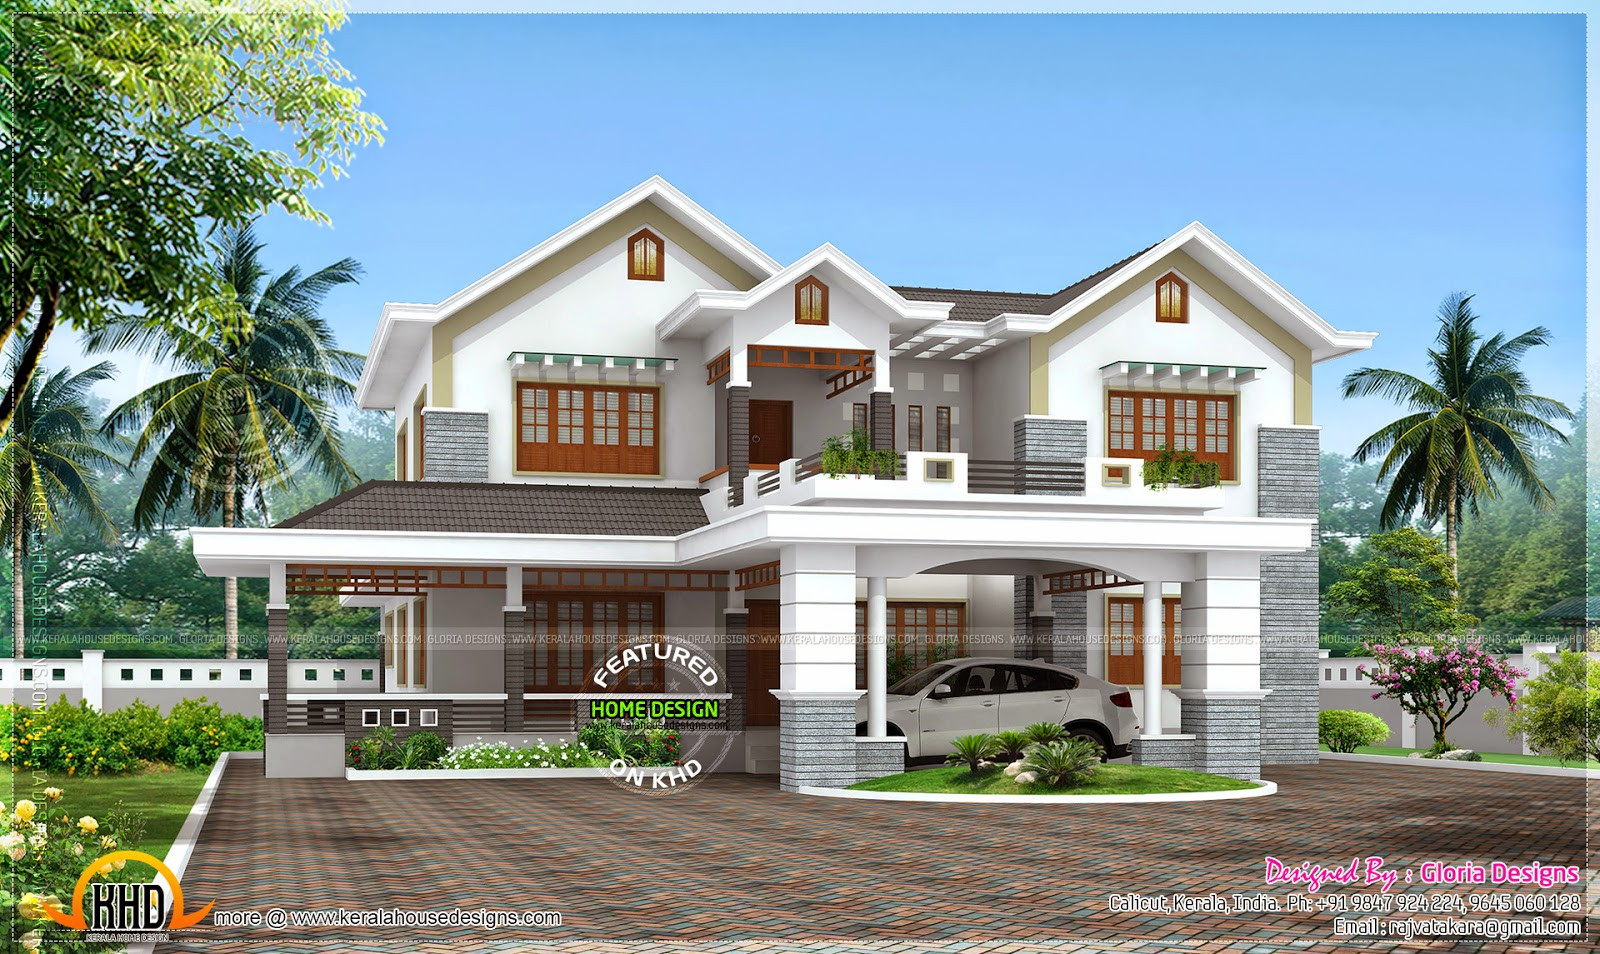 Beautiful 4 bedroom modern house kerala home design and for Top beautiful house